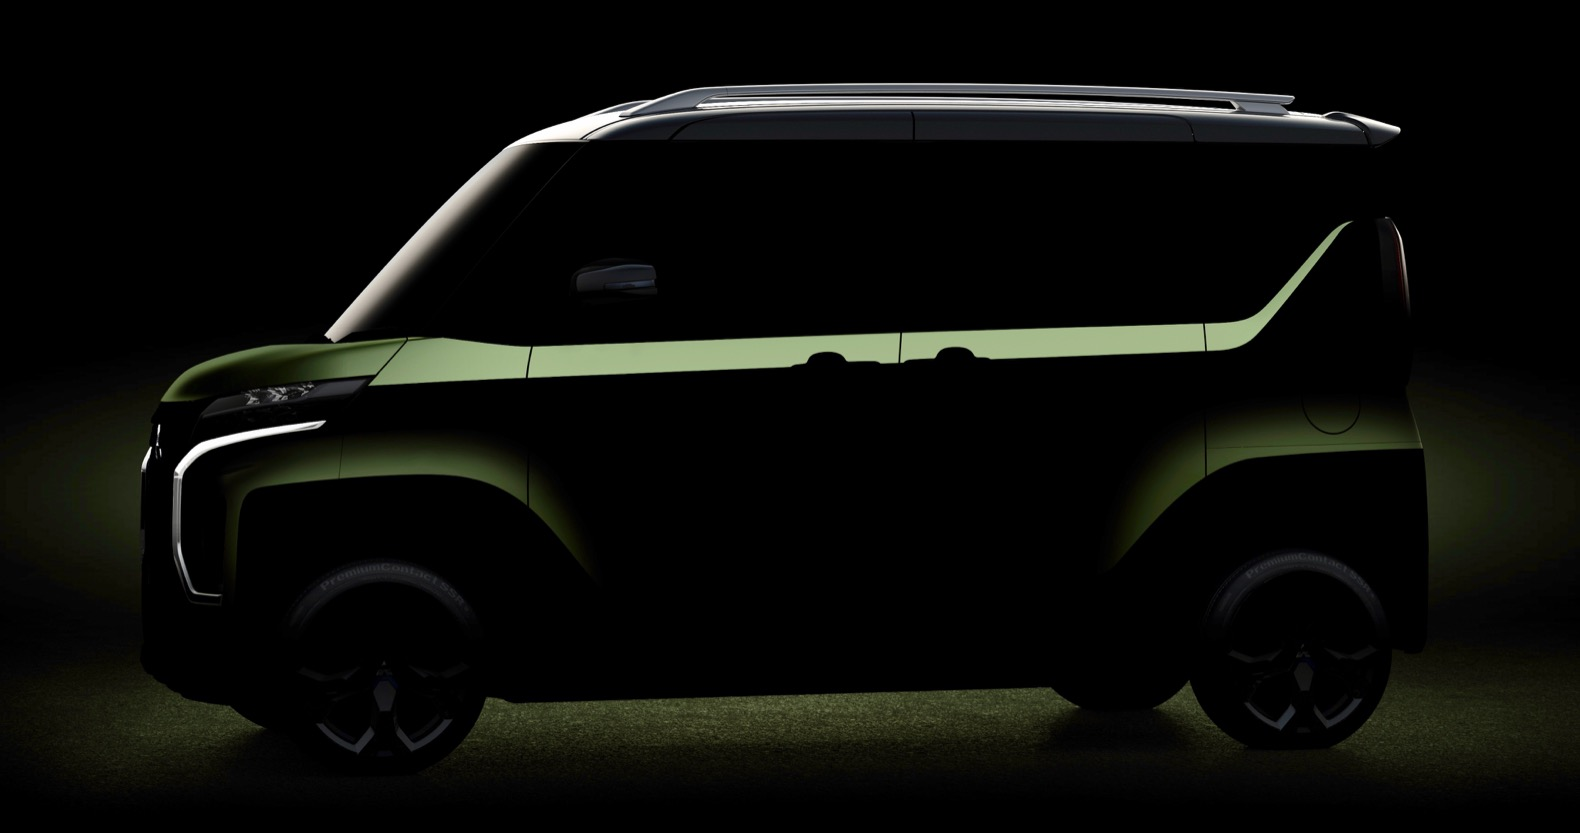 Mitsubishi teases two new concepts for the Tokyo Motor Show | The Torque Report